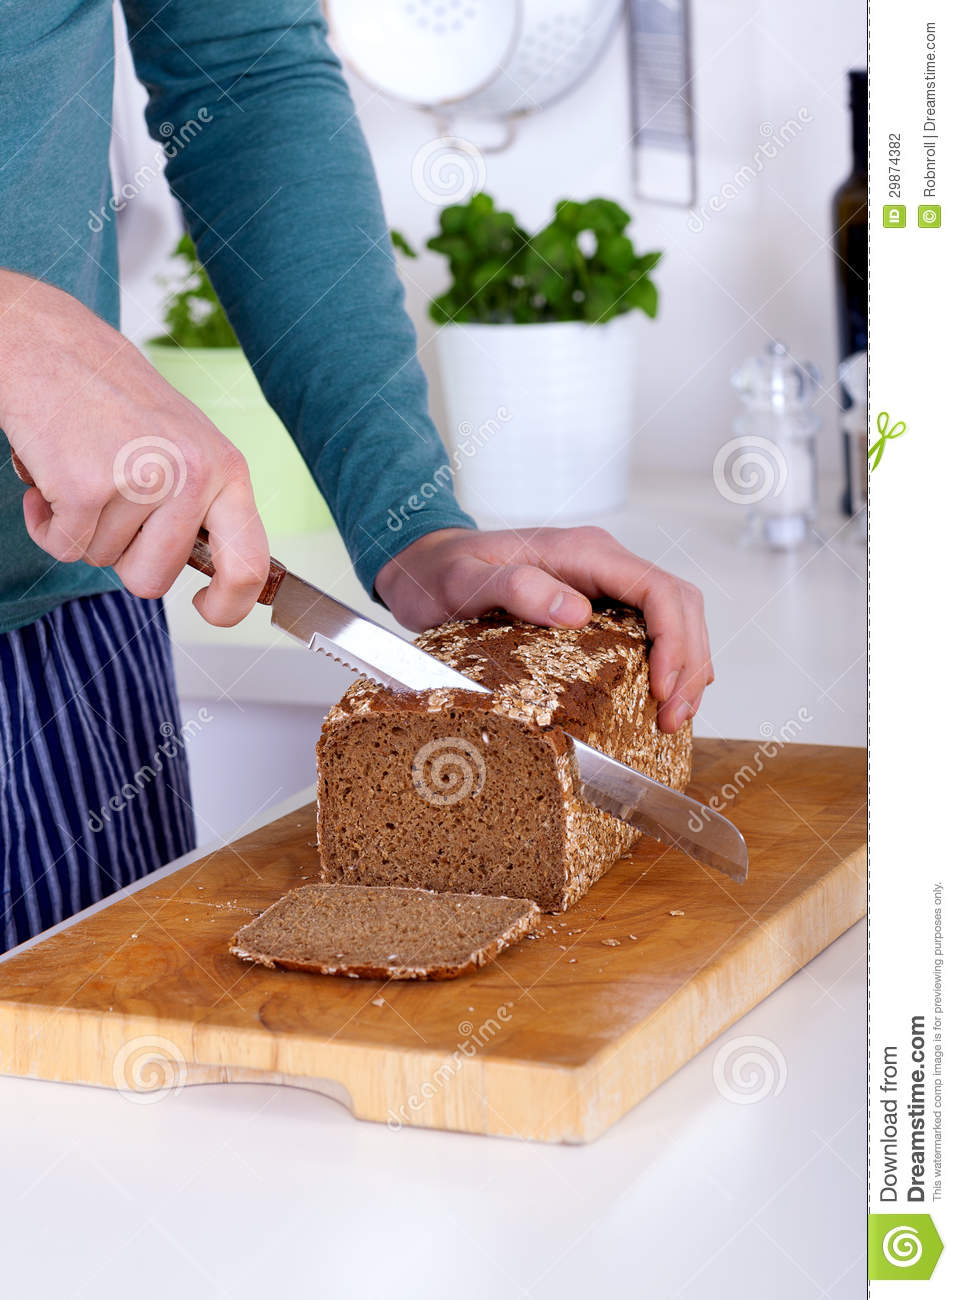 Close Up Of Hands Cutting A Slice Of Bread Stock